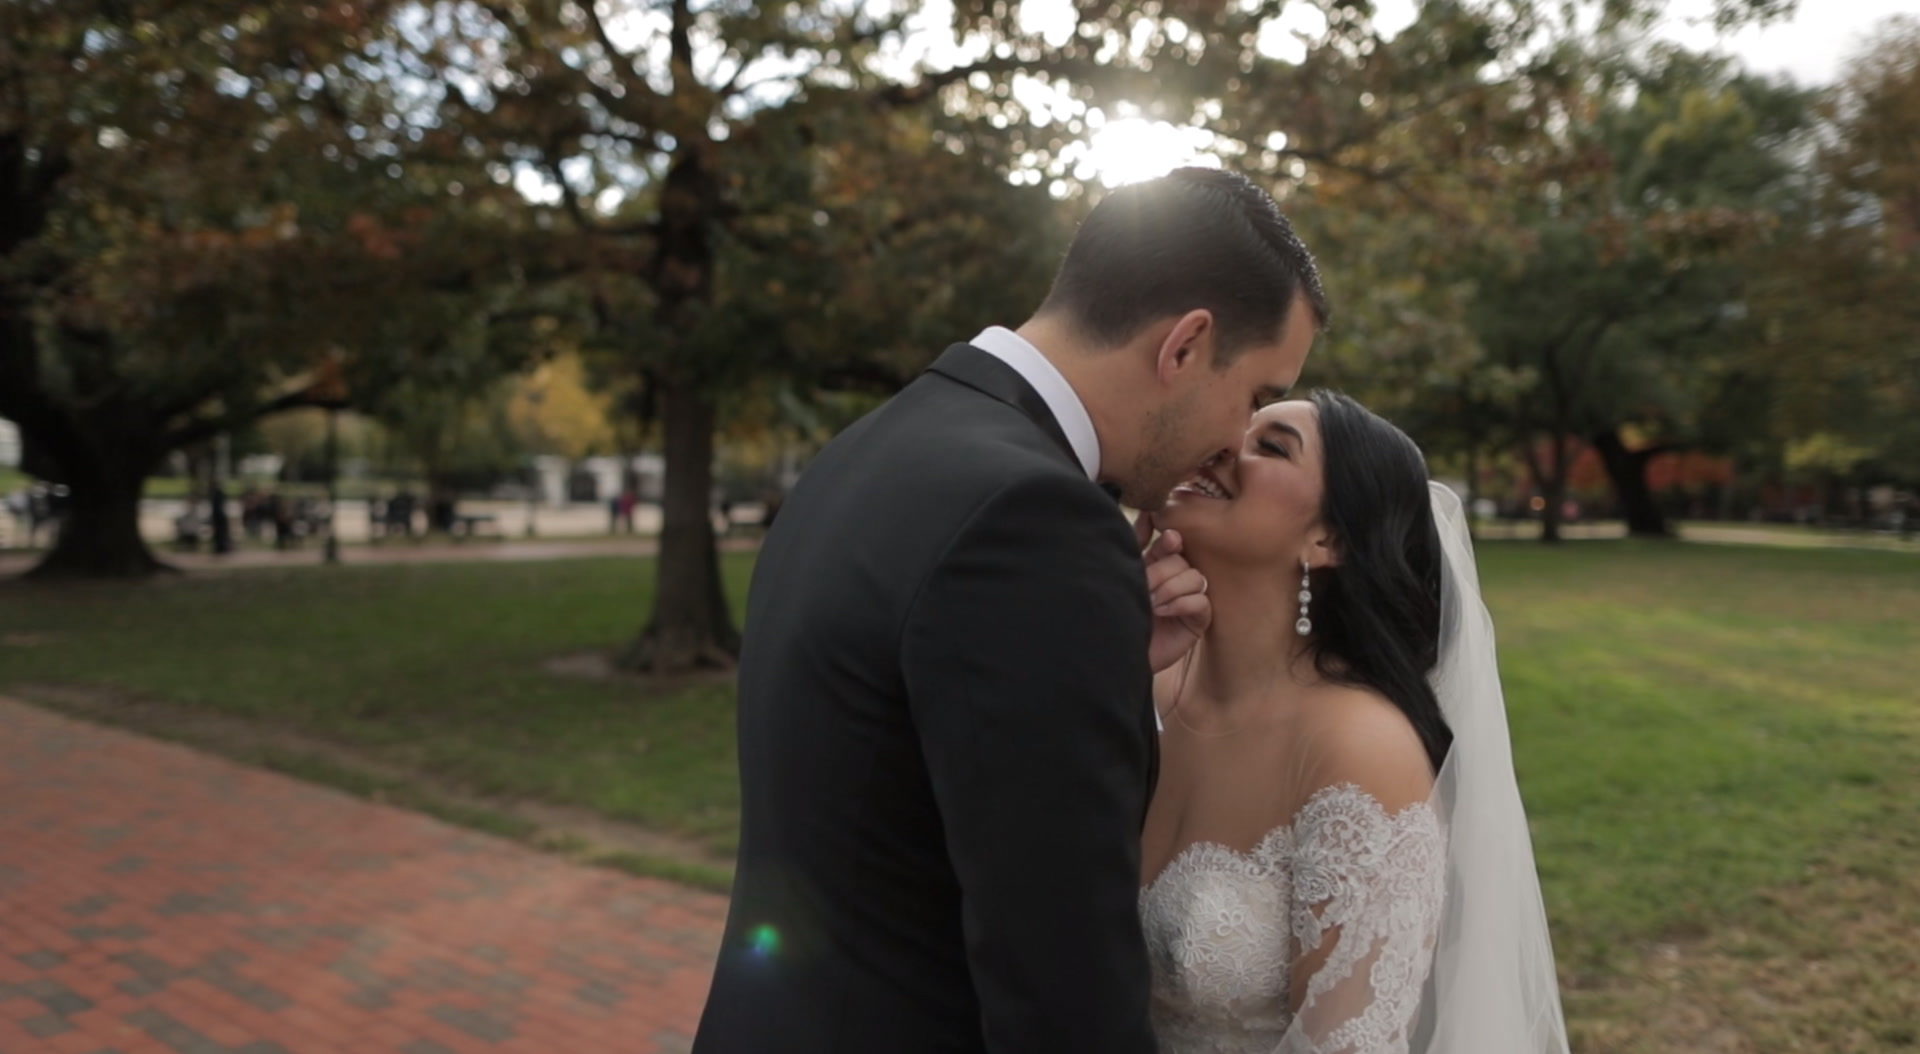 Nicole + Miguel | Washington, District of Columbia | The Fairmont